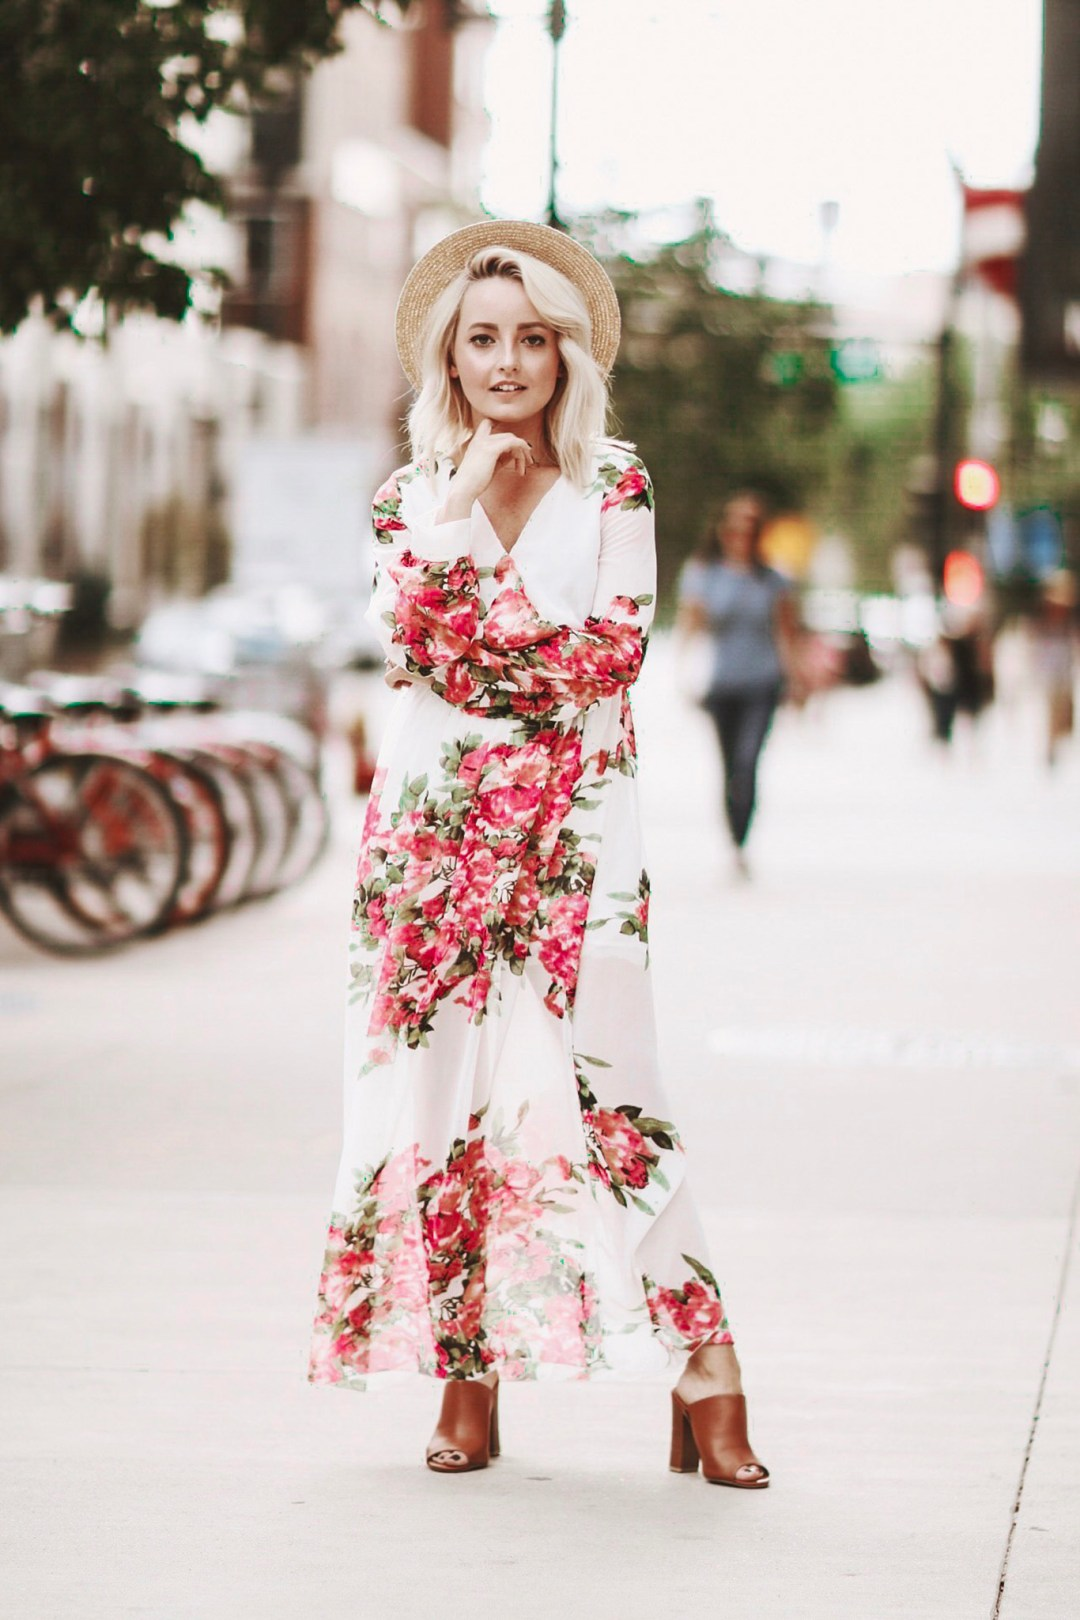 Alena Gidenko of modaprints.com styles a floral maxi dress for Fall with brown open toe mules